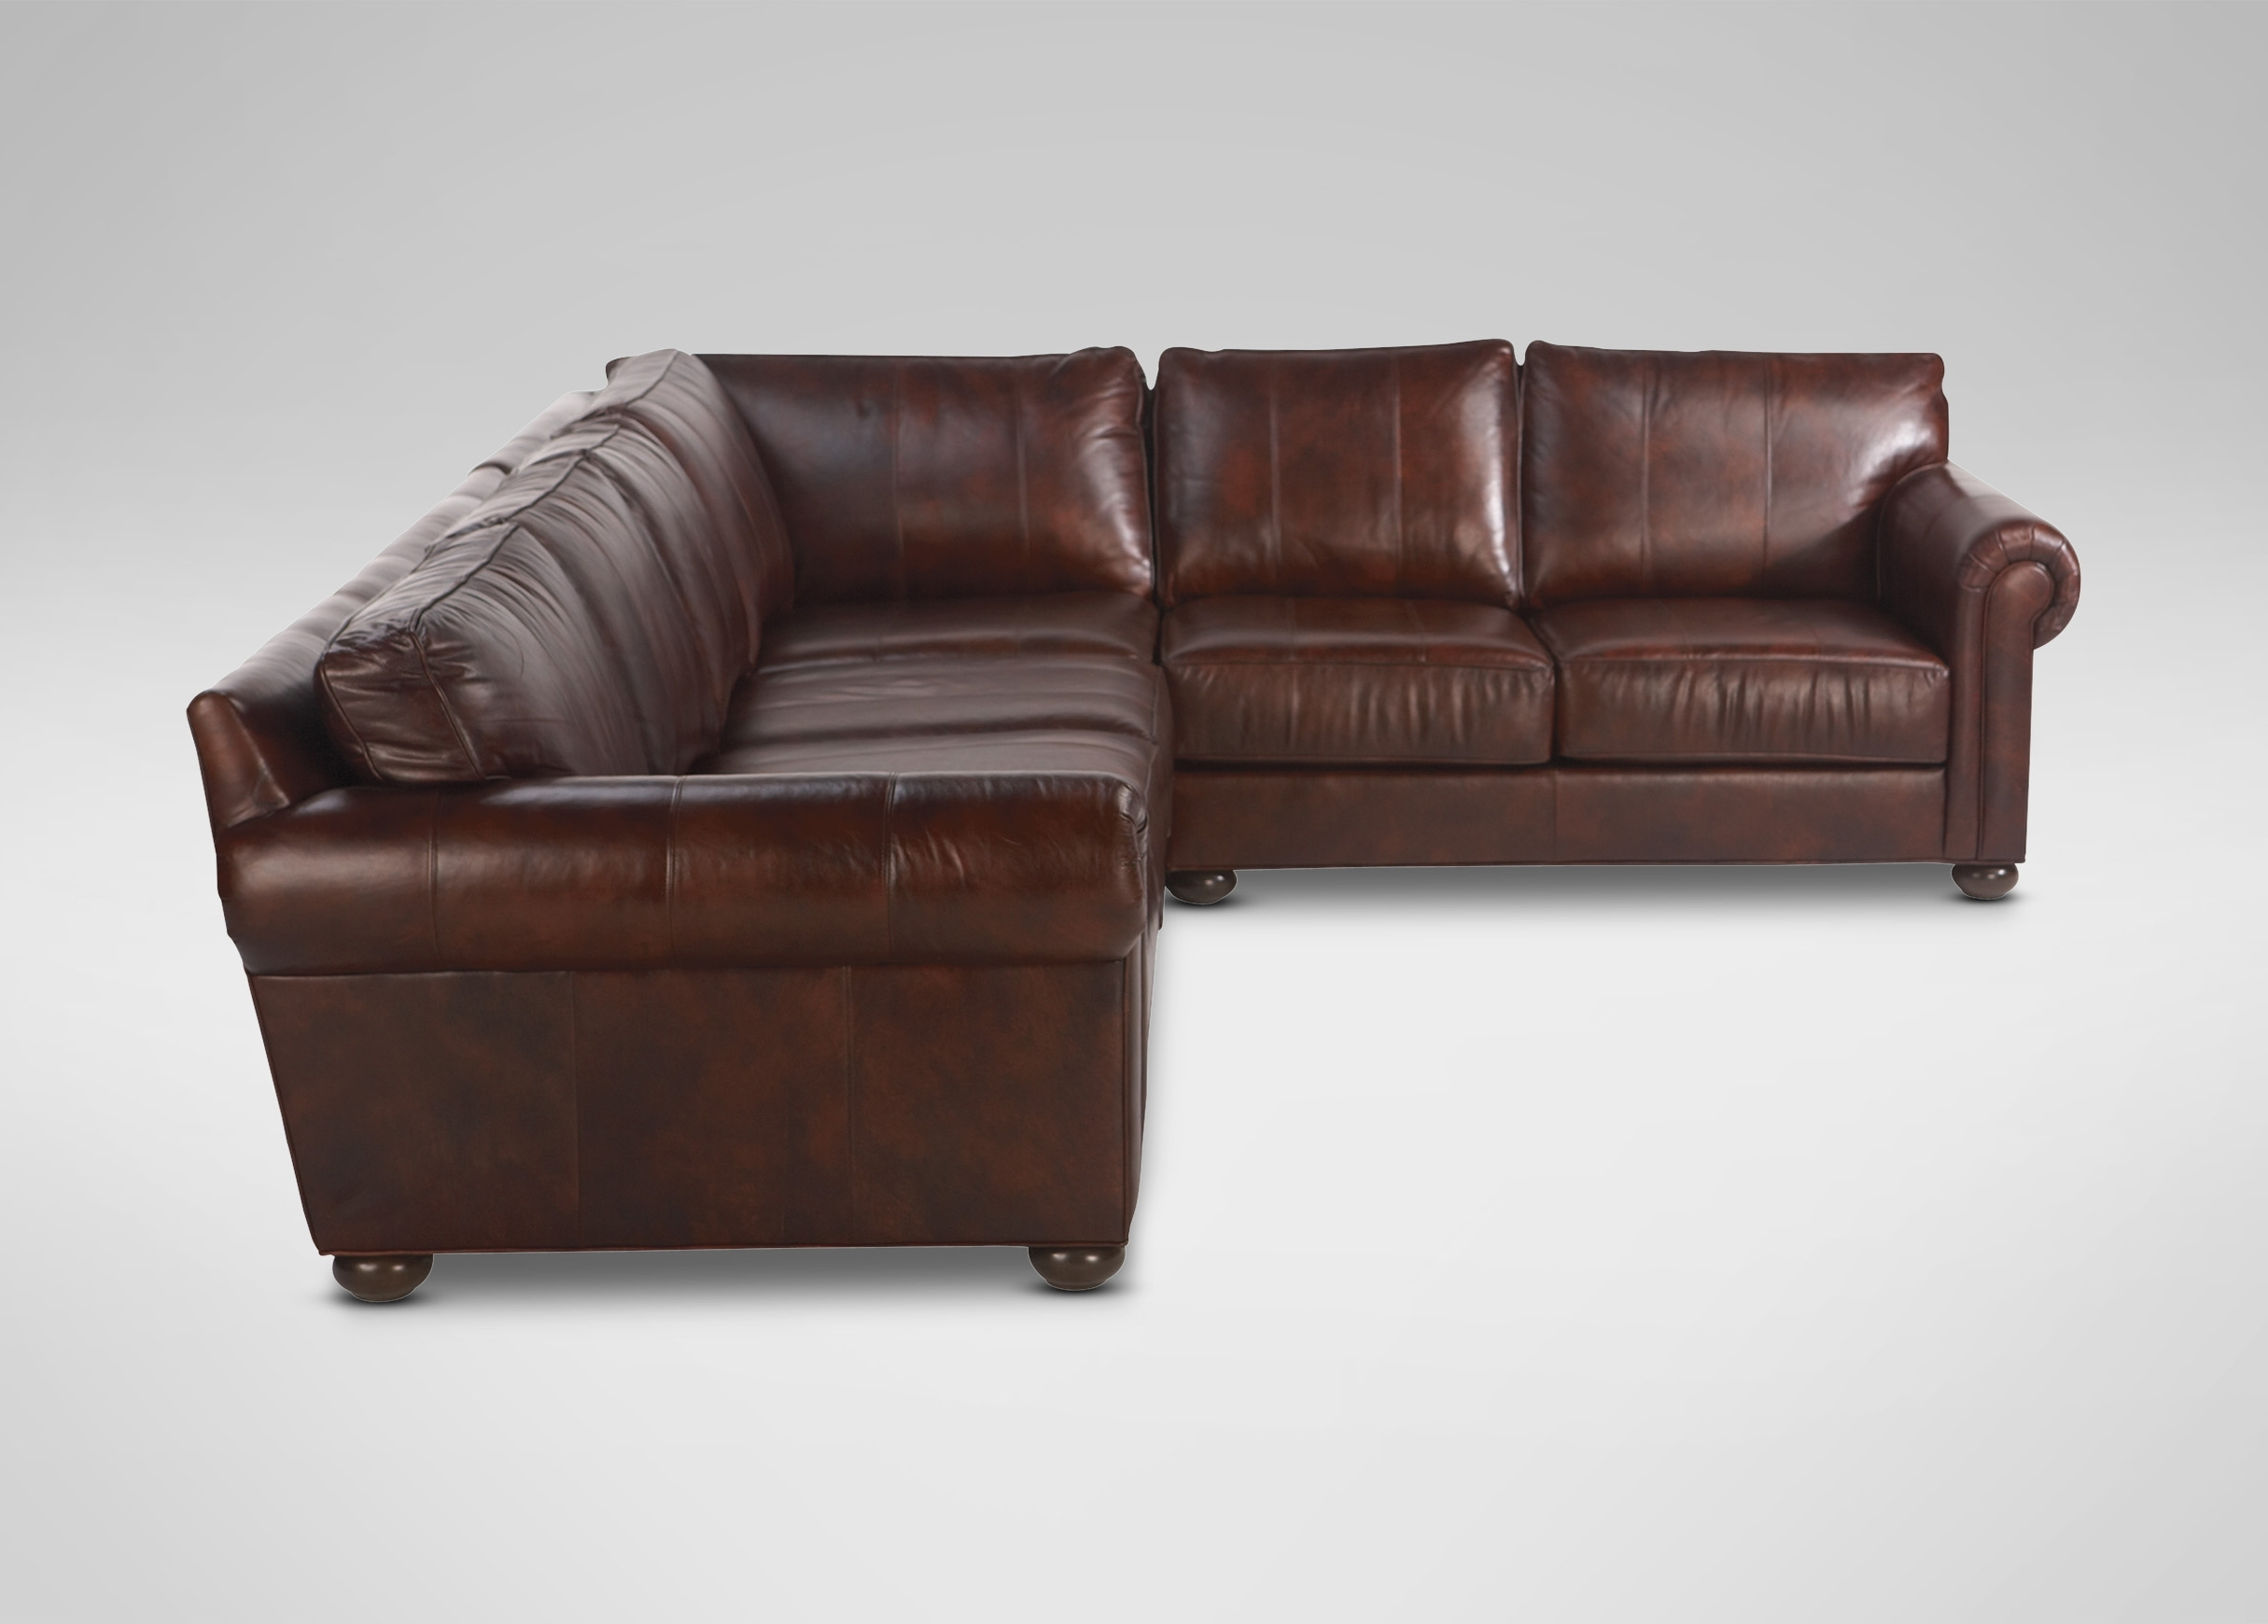 Sectional Sofas At Barrie With Regard To Well Liked Furniture : Claudia Ii Leather Sofa And Loveseat Macys Leather (View 5 of 20)